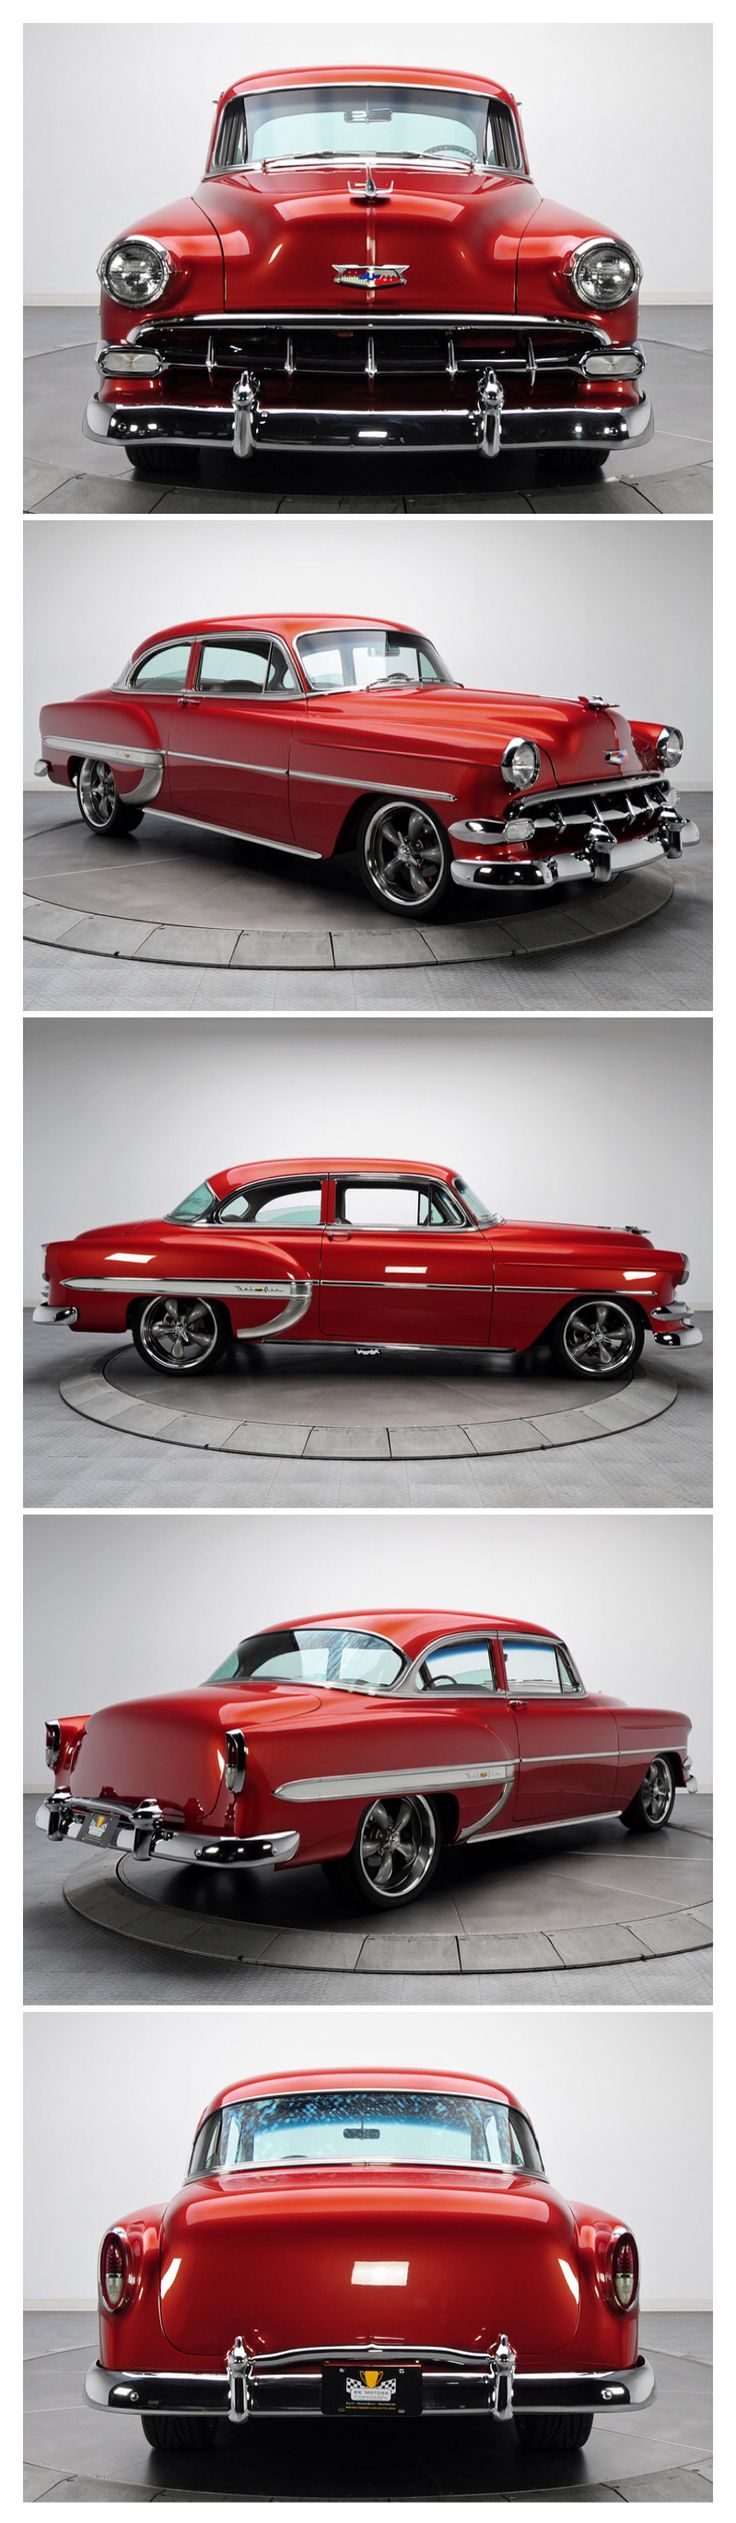 1954 Chevy Belair....Brought to you by #HouseofInsurance #EugeneOregon